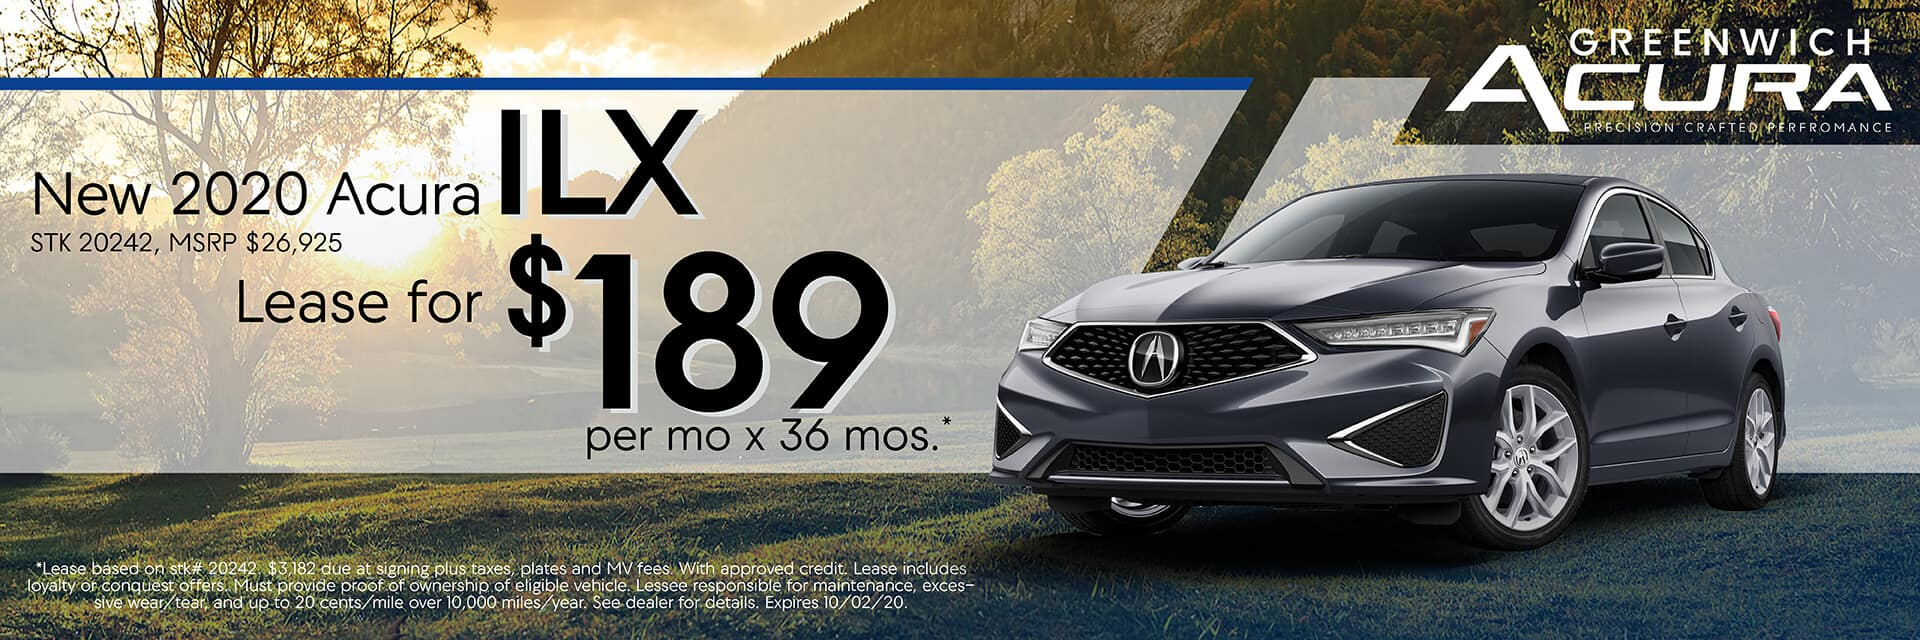 2020 Acura ILX, Lease for $189/Mo. x 36 Mos. | Greenwich, CT